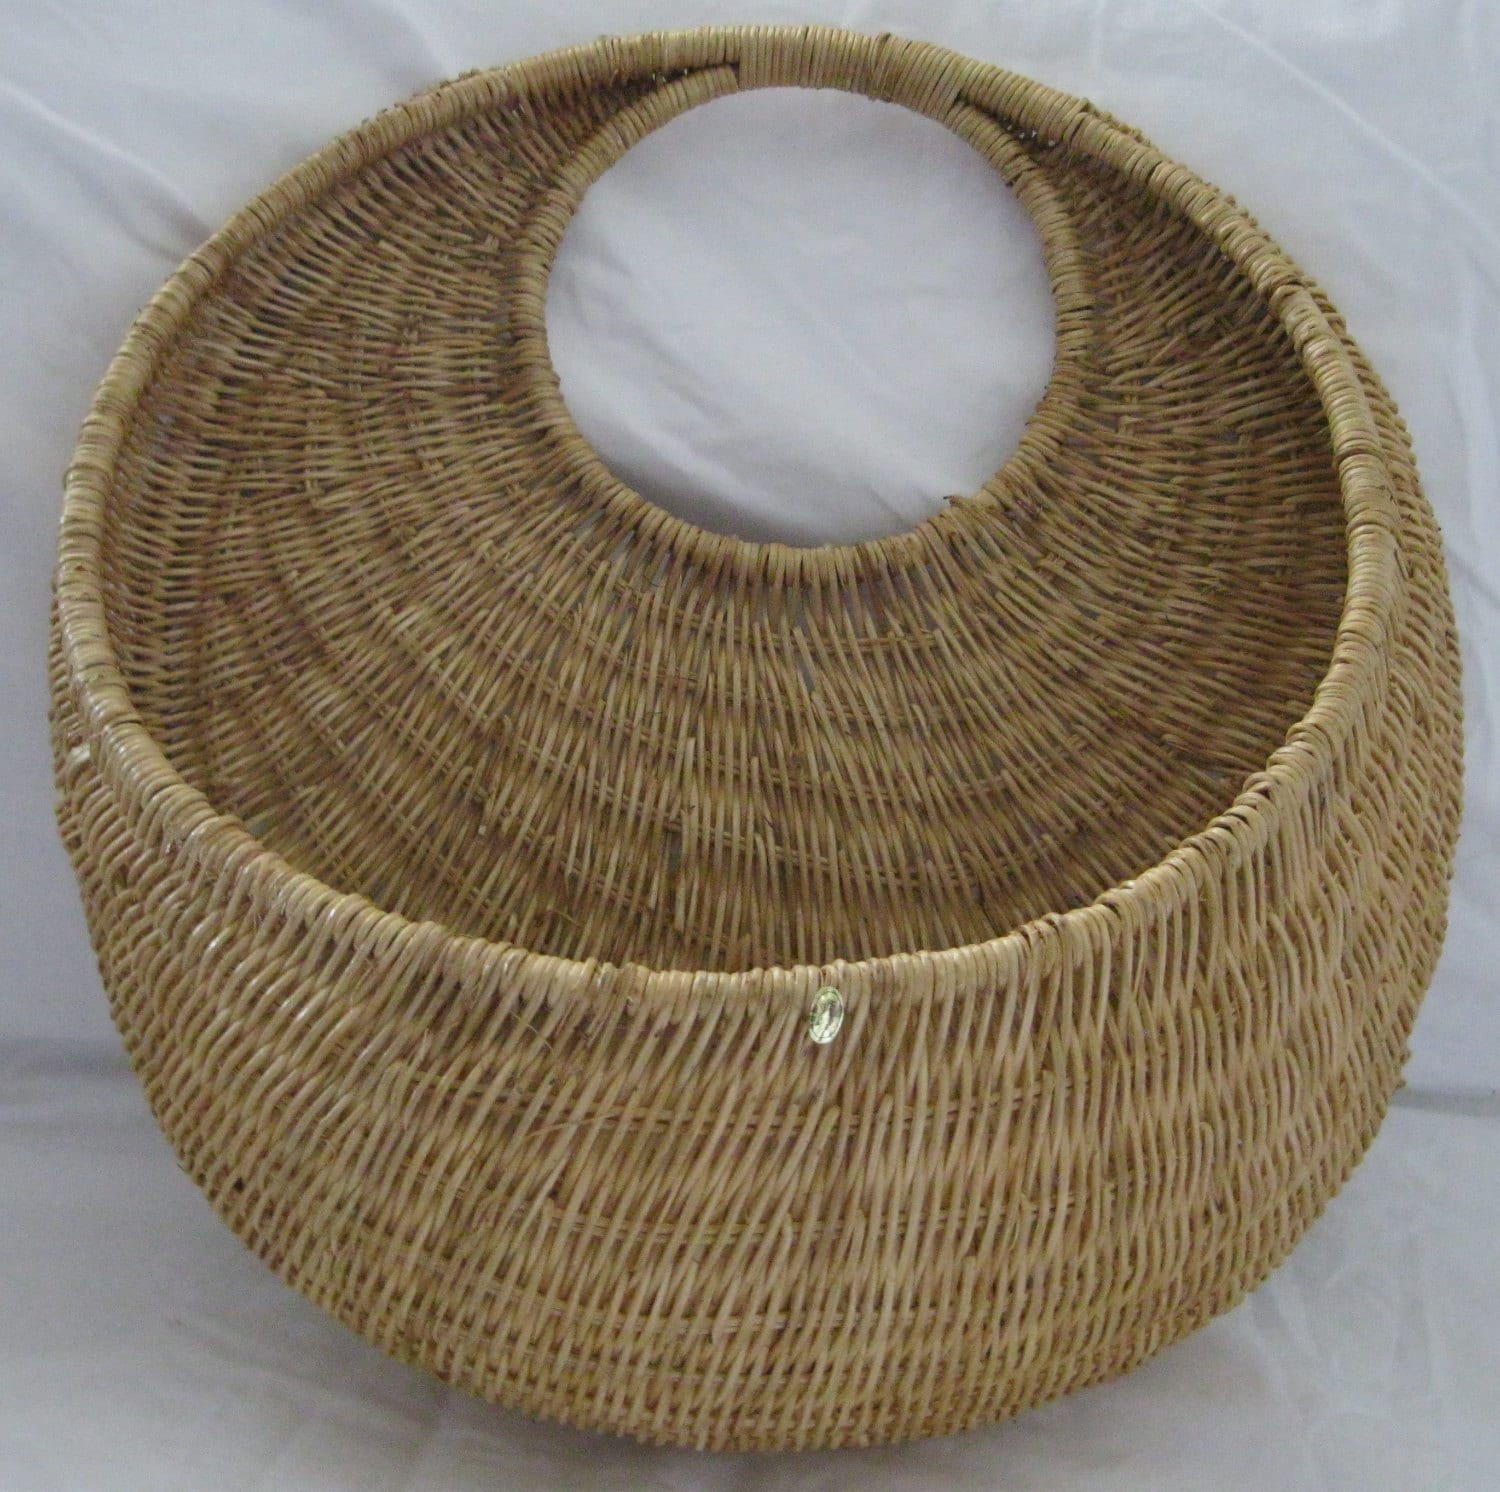 Large rattan wall decor : Large round wicker basket with pouch wall hanging